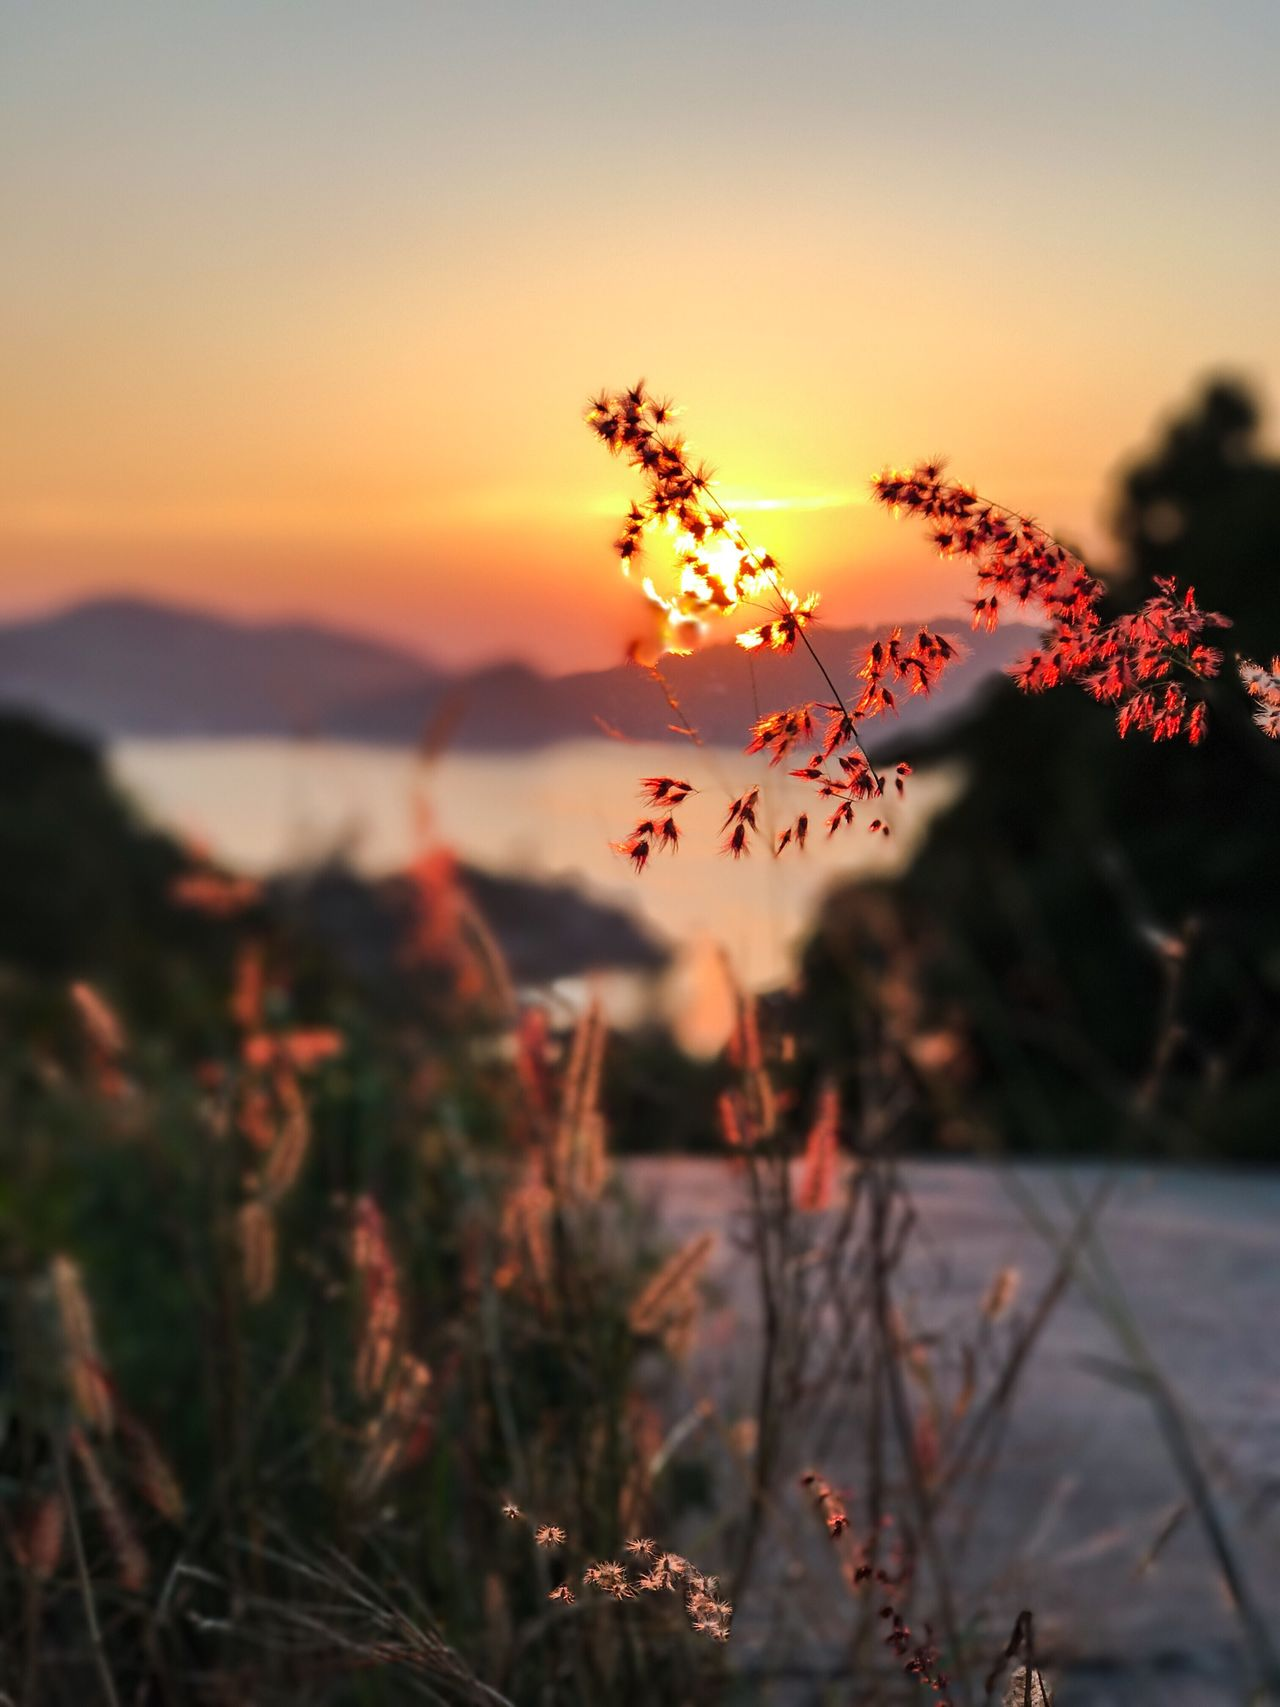 Sunset Nature Beauty In Nature Growth Outdoors Plant No People Flower Focus On Foreground Tranquility Scenics Sky Mountain Tree Water Close-up Twilight Grass Growth Sun Mountains Road Sea Horizon Over Water Koh Phangan